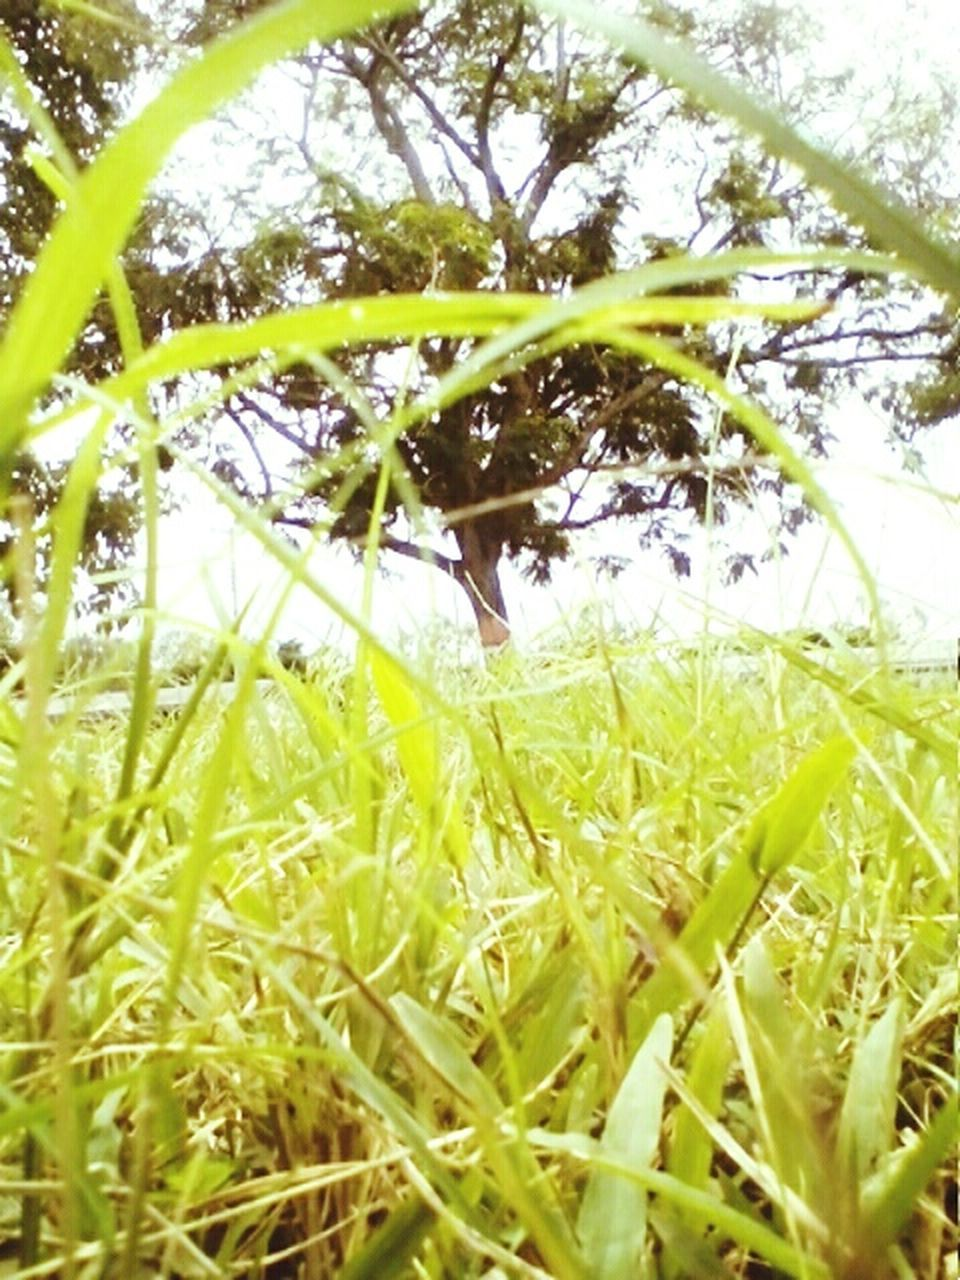 growth, nature, grass, field, beauty in nature, day, green color, tranquility, outdoors, plant, no people, agriculture, tree, close-up, freshness, sky